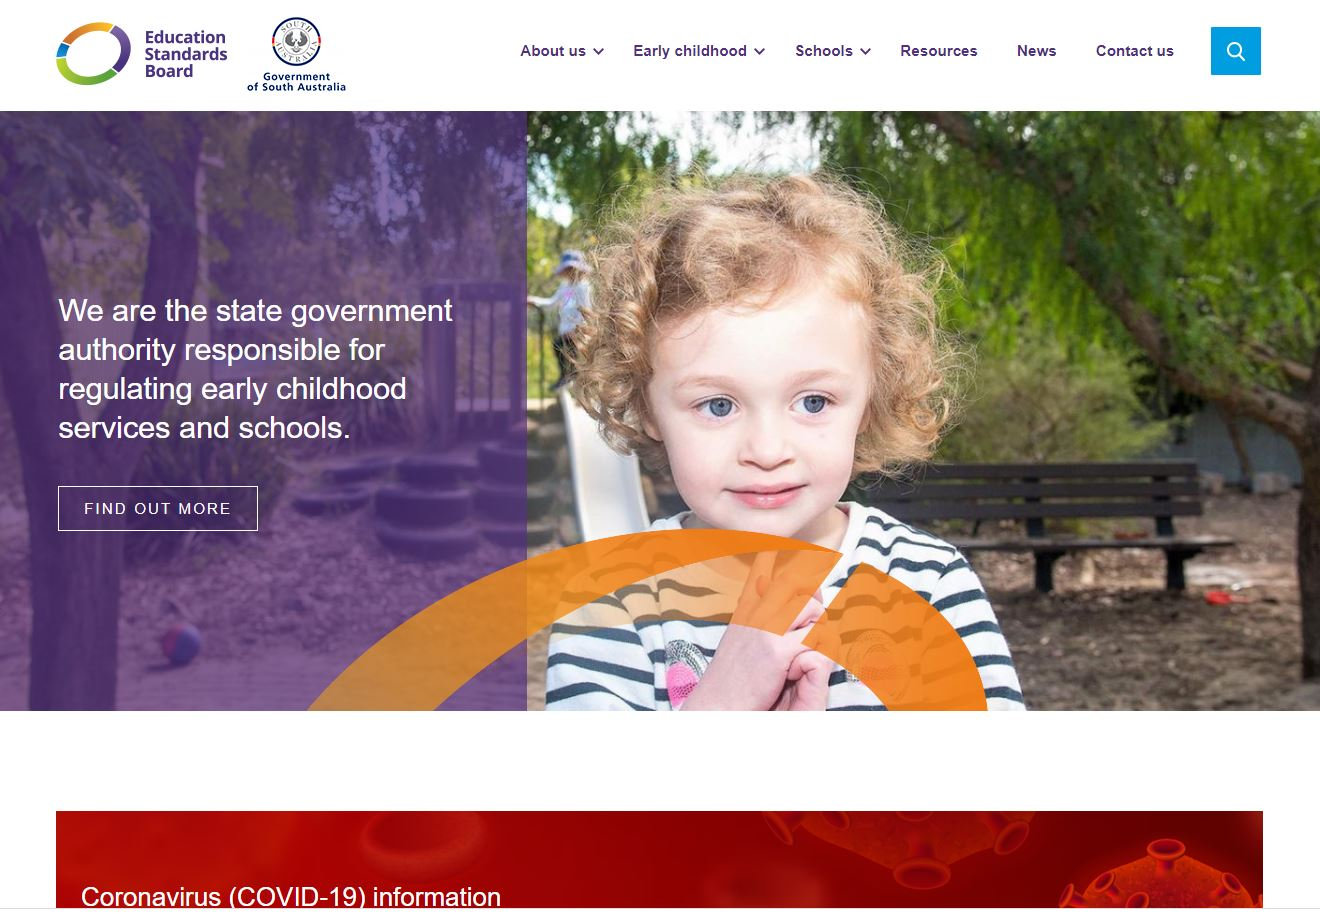 Education Standards Board website home page